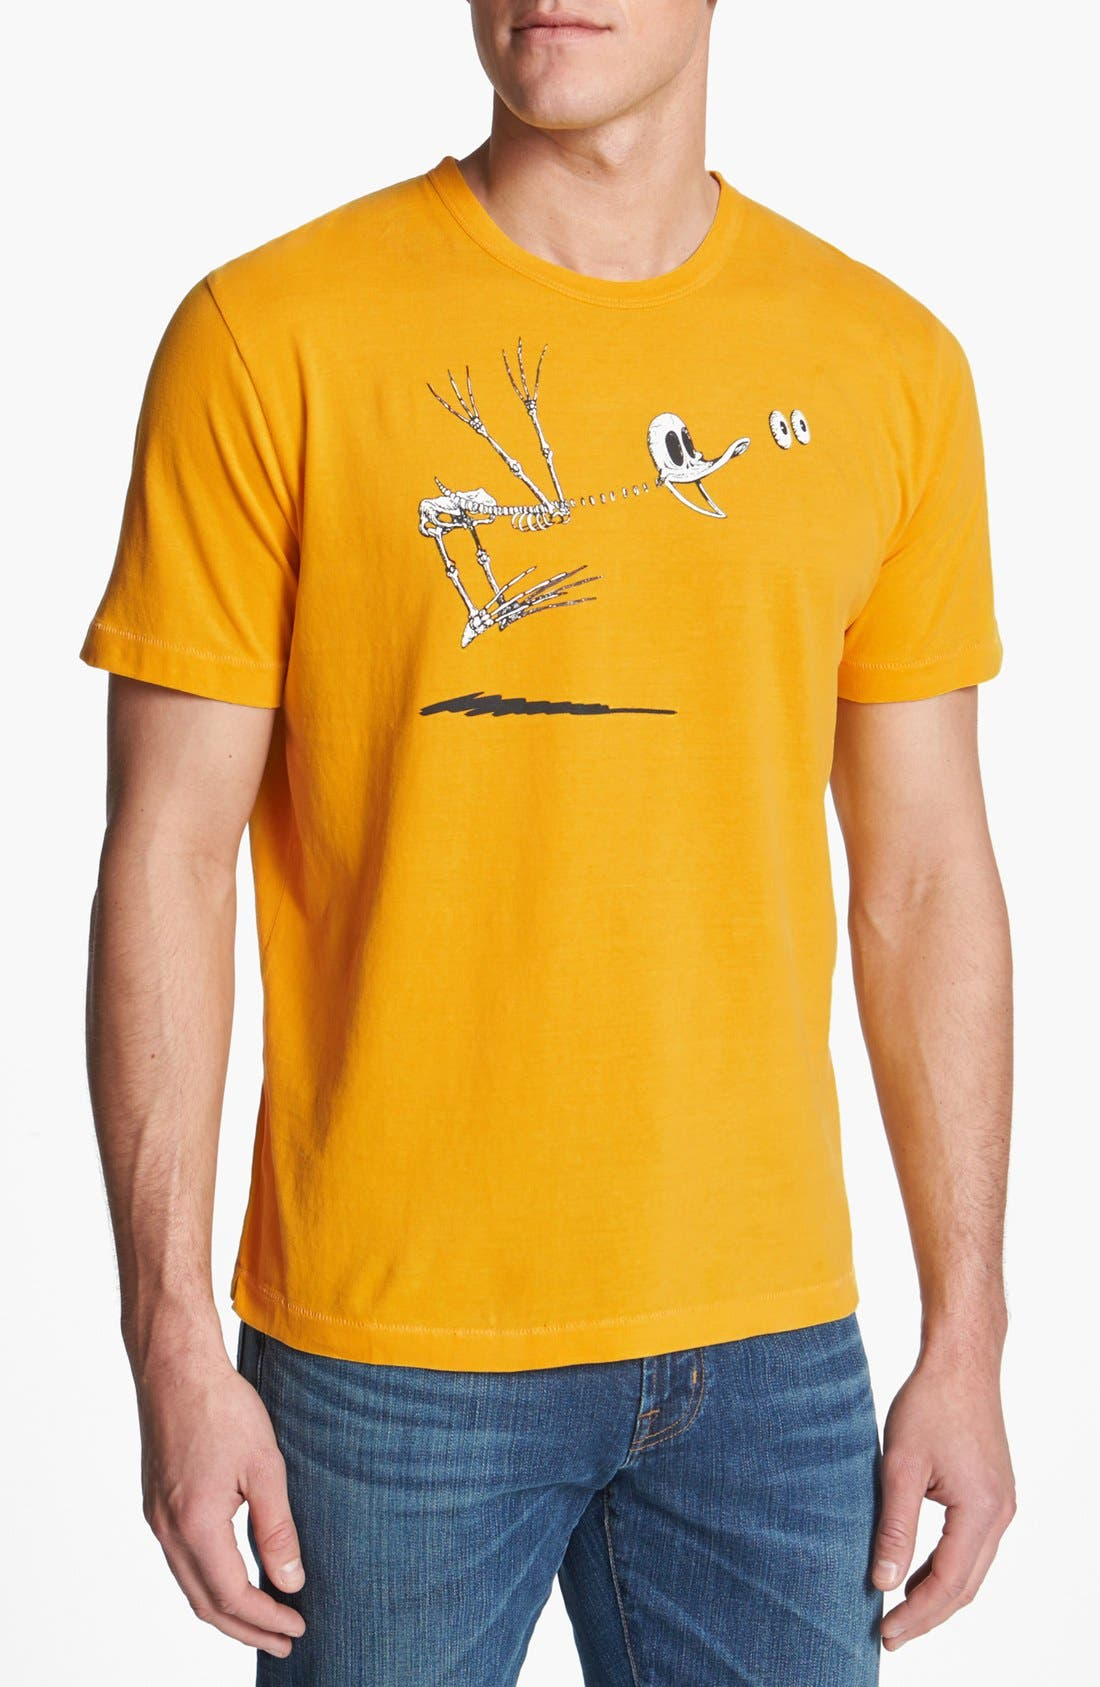 Alternate Image 1 Selected - French Connection 'Peeking Duck' T-Shirt